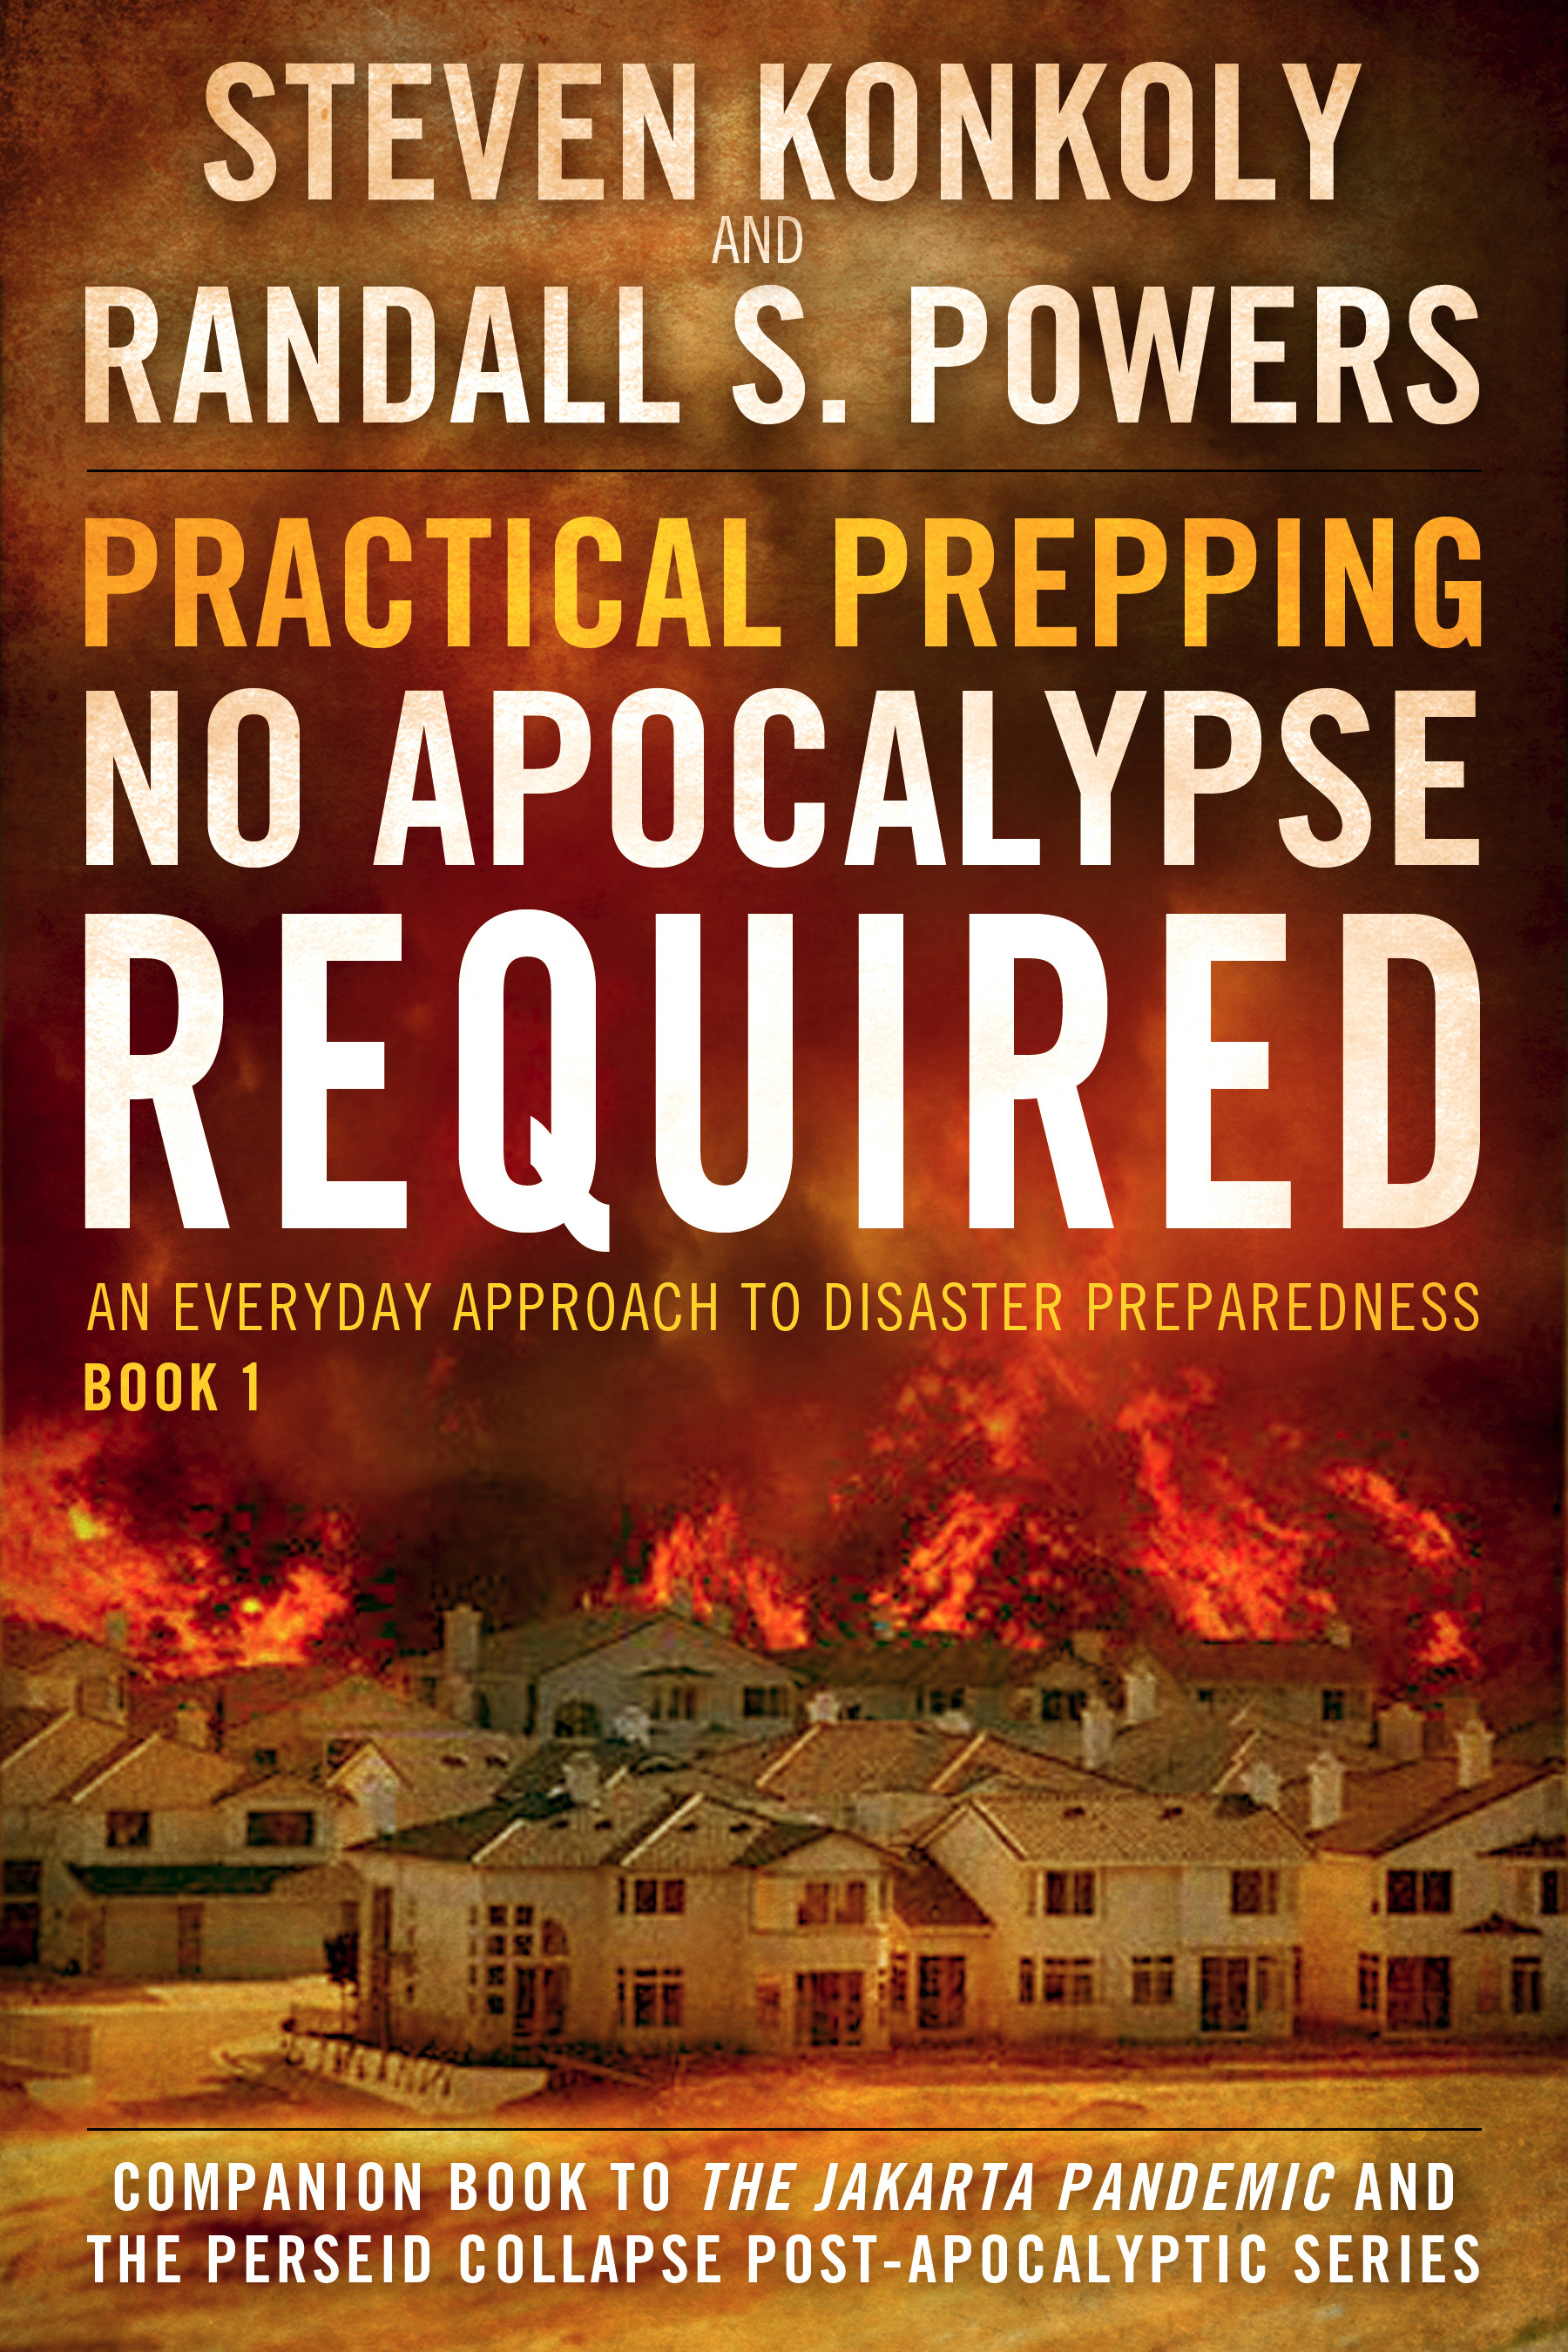 PRACTICAL PREPPING: NO APOCALYPSE REQUIRED | GET YOUR COPY TODAY!